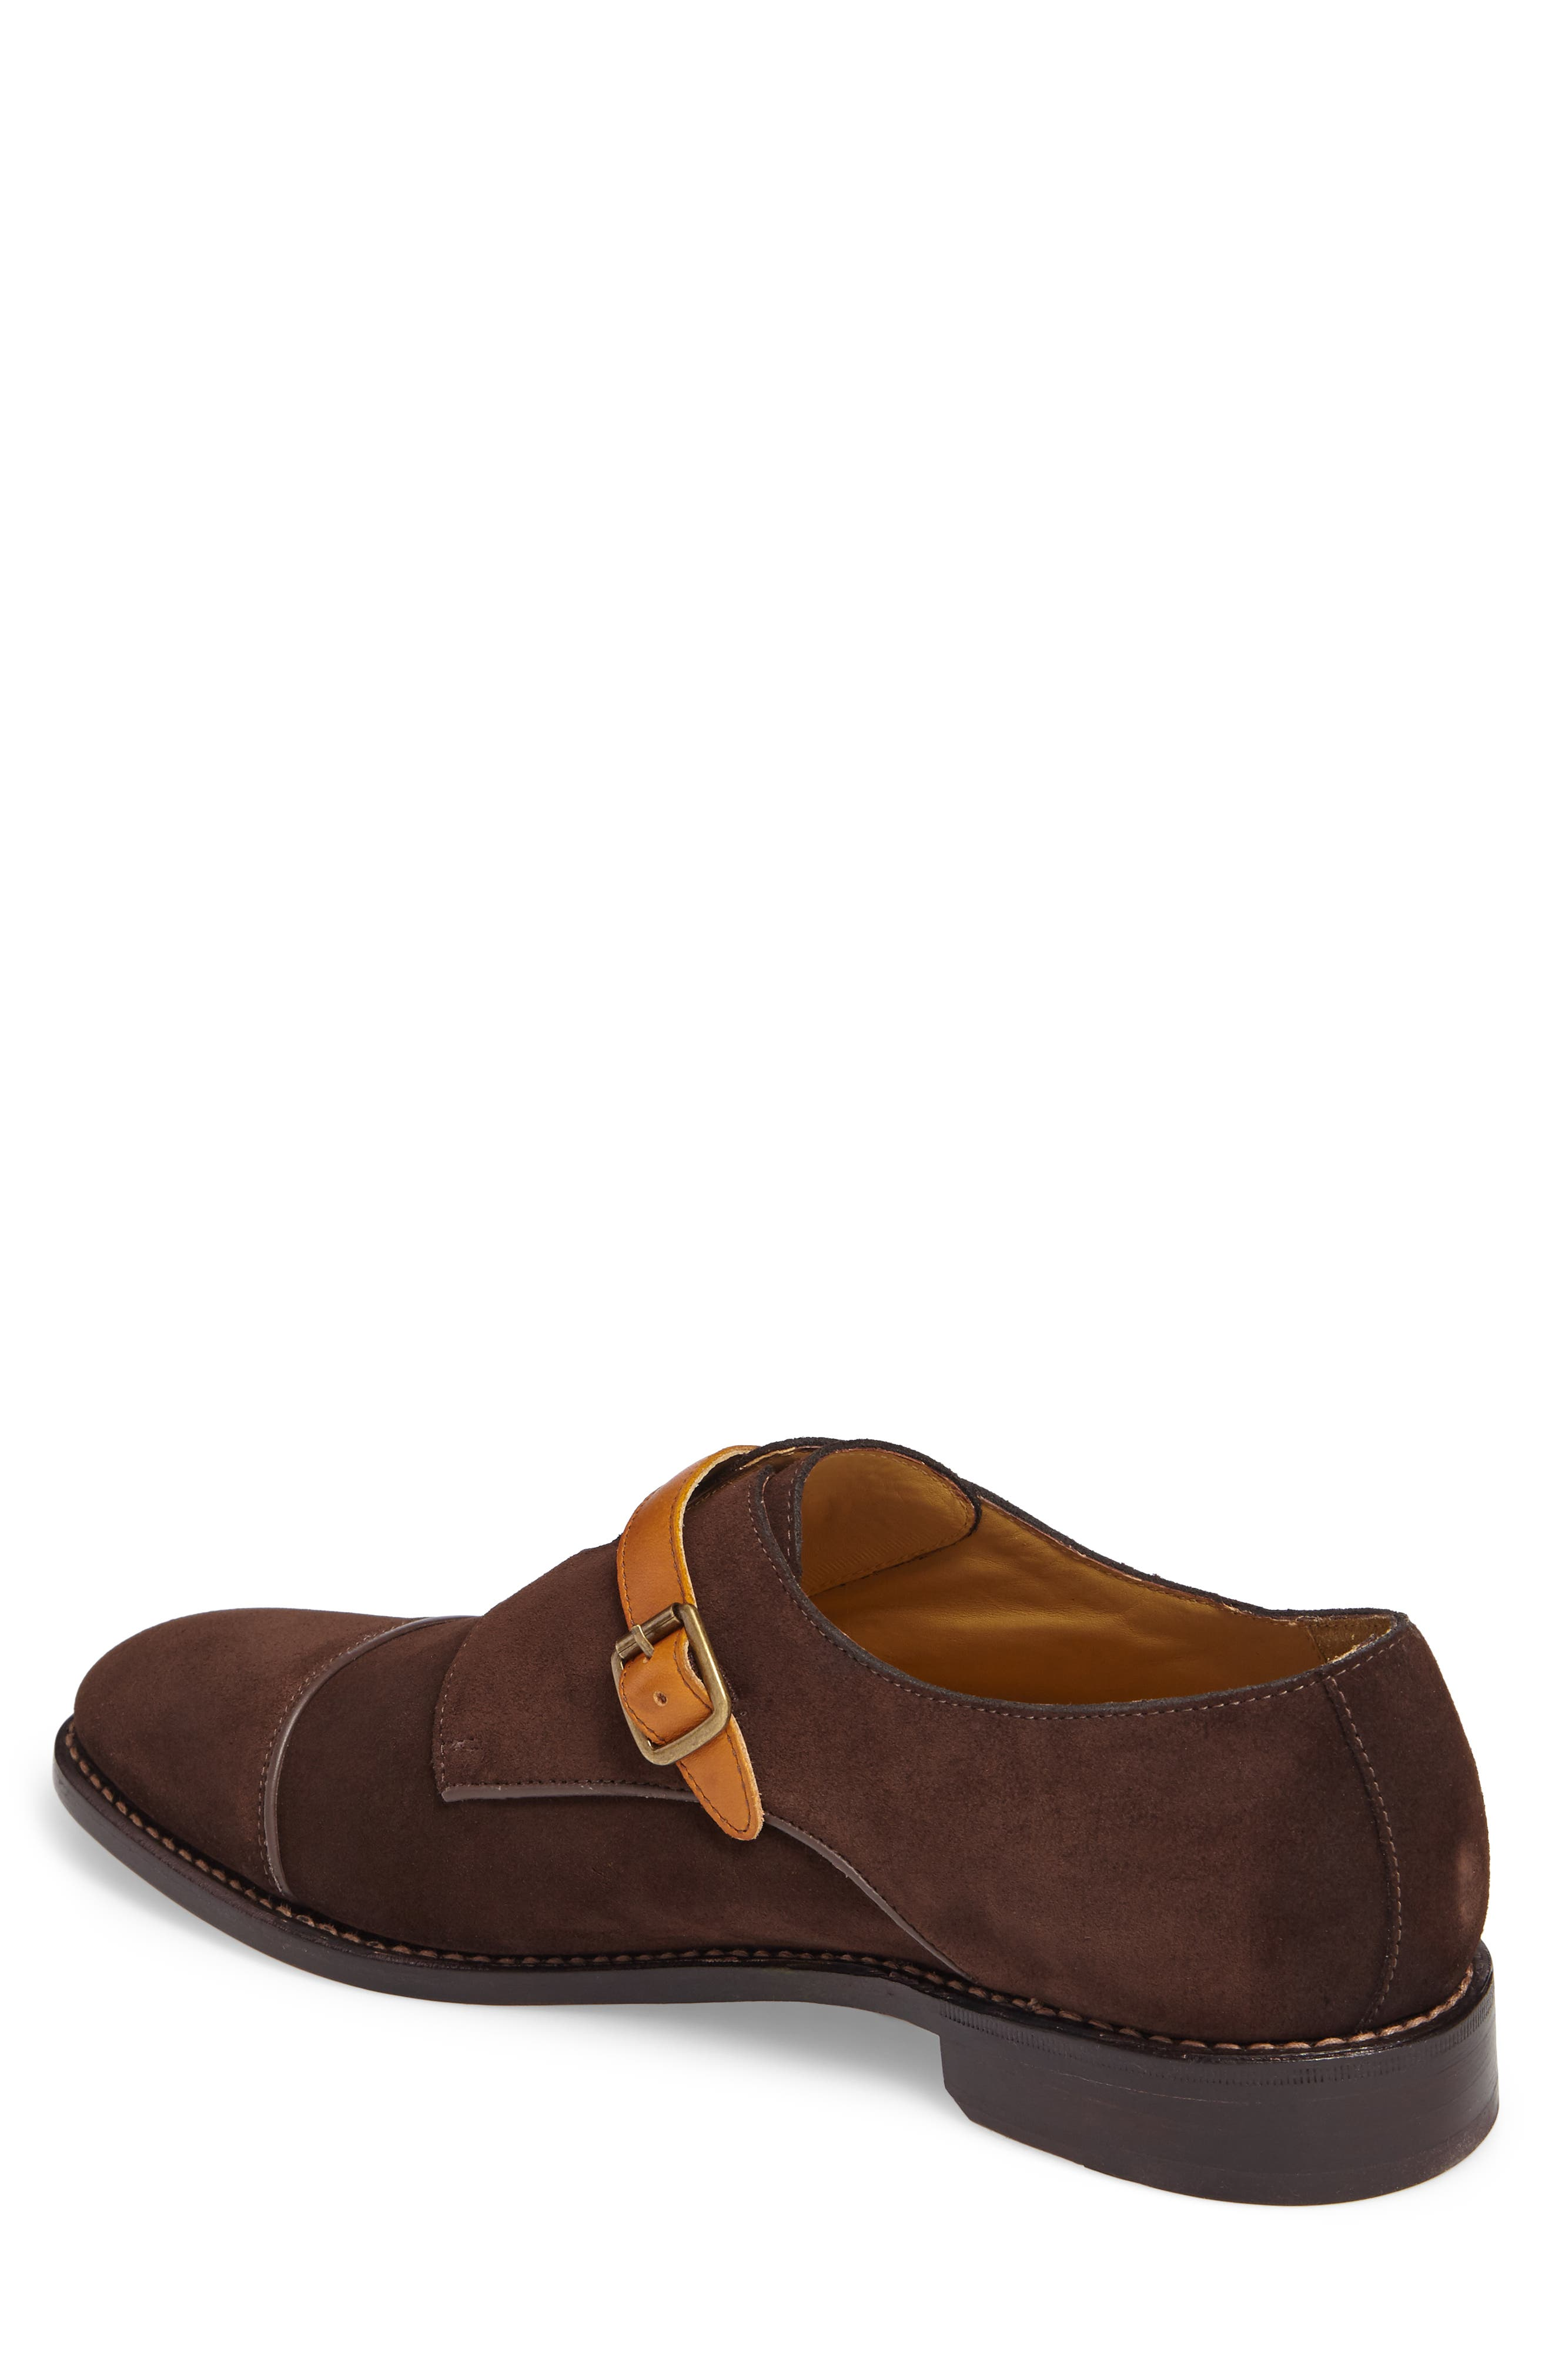 Alternate Image 2  - Michael Bastian Brando Cap Toe Monk Shoe (Men)